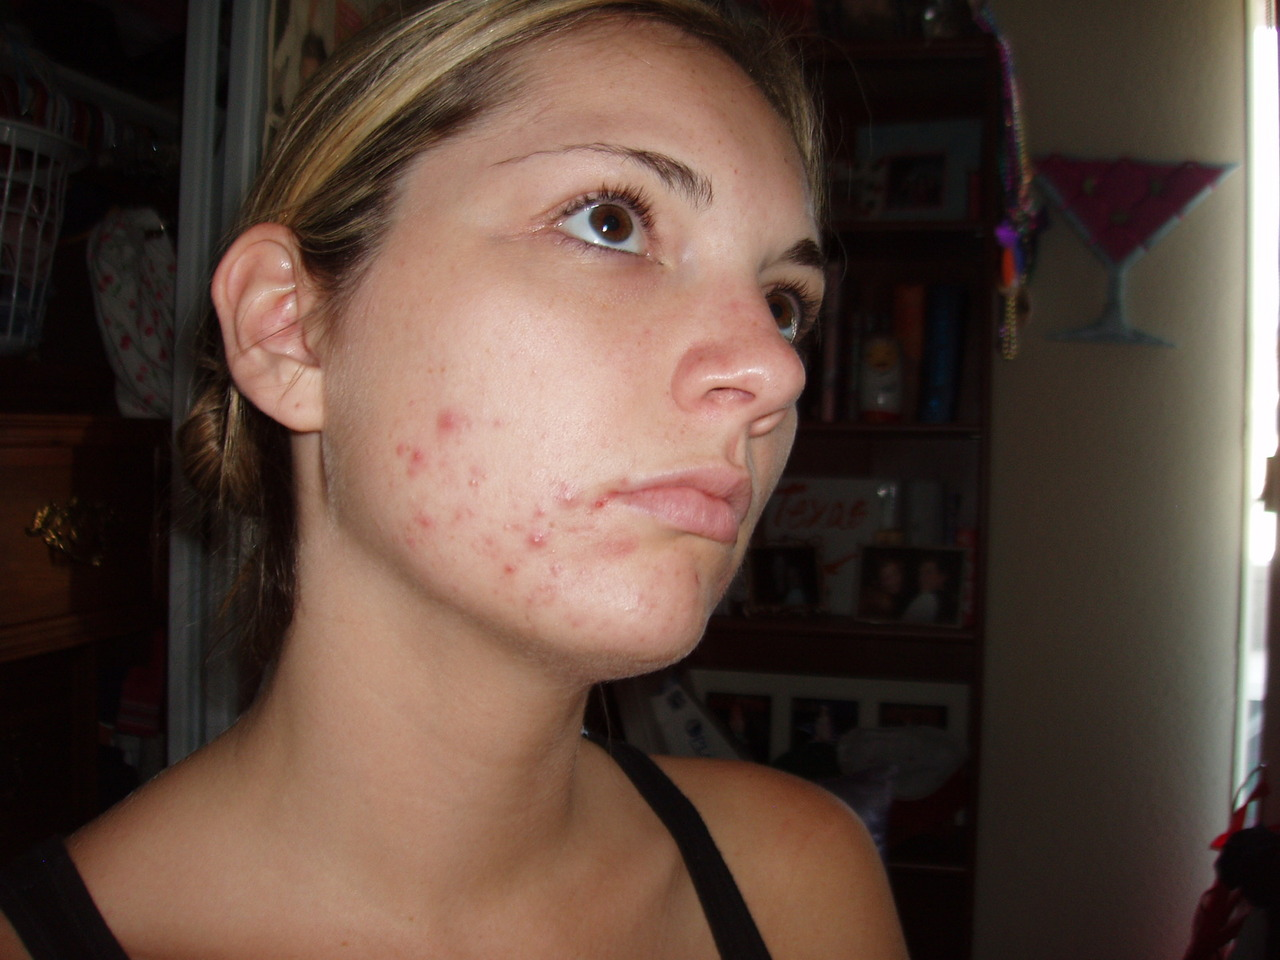 23 year-old me with insane acne.